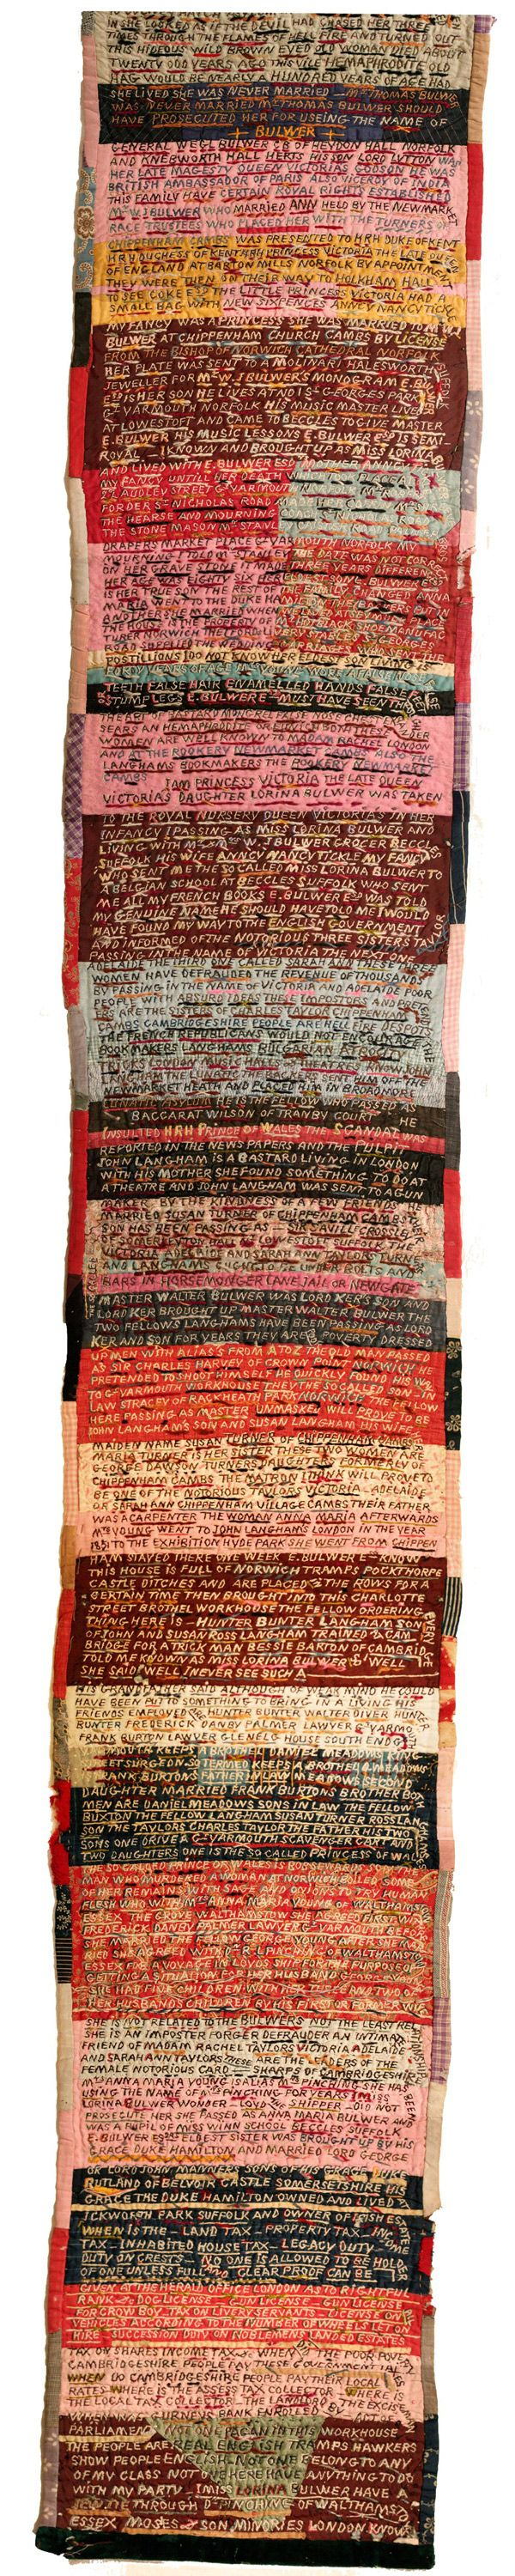 Lorina Bulwer's amazing embroidered 'Letters from the Workhouse'